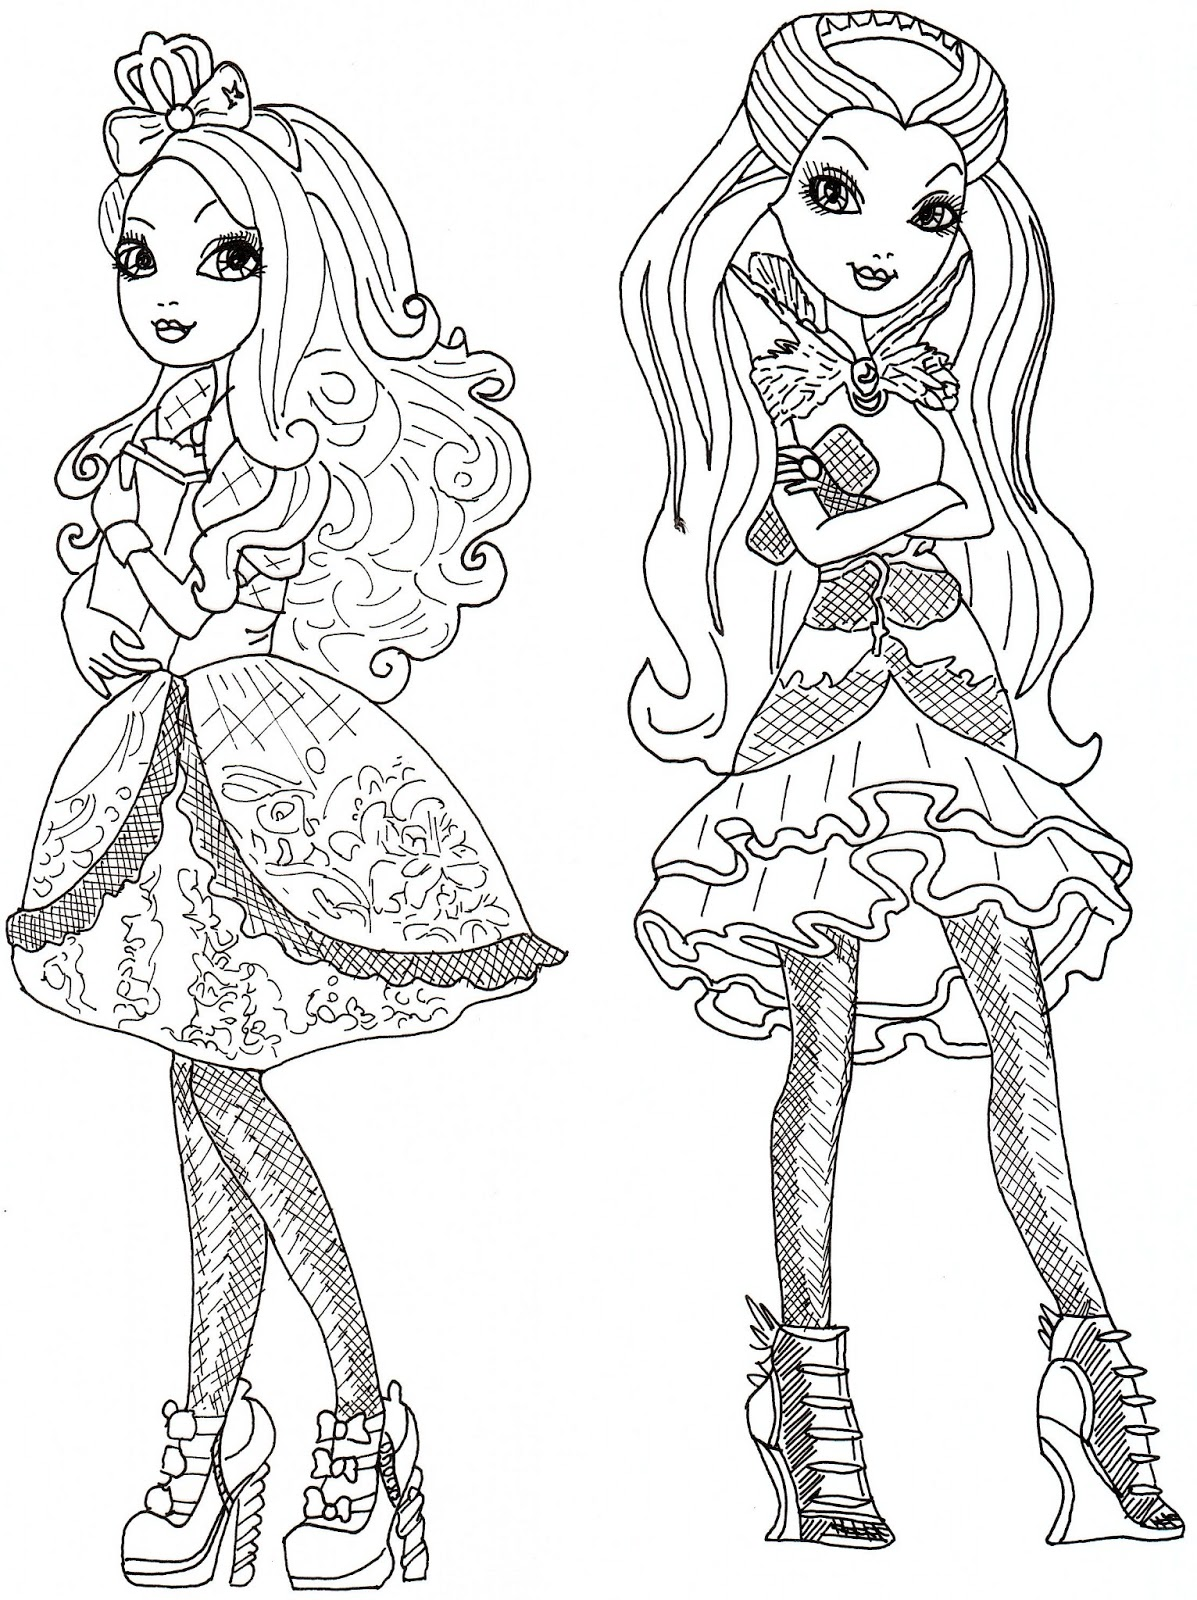 Free printable ever after high coloring pages june 2013 for Queen coloring page